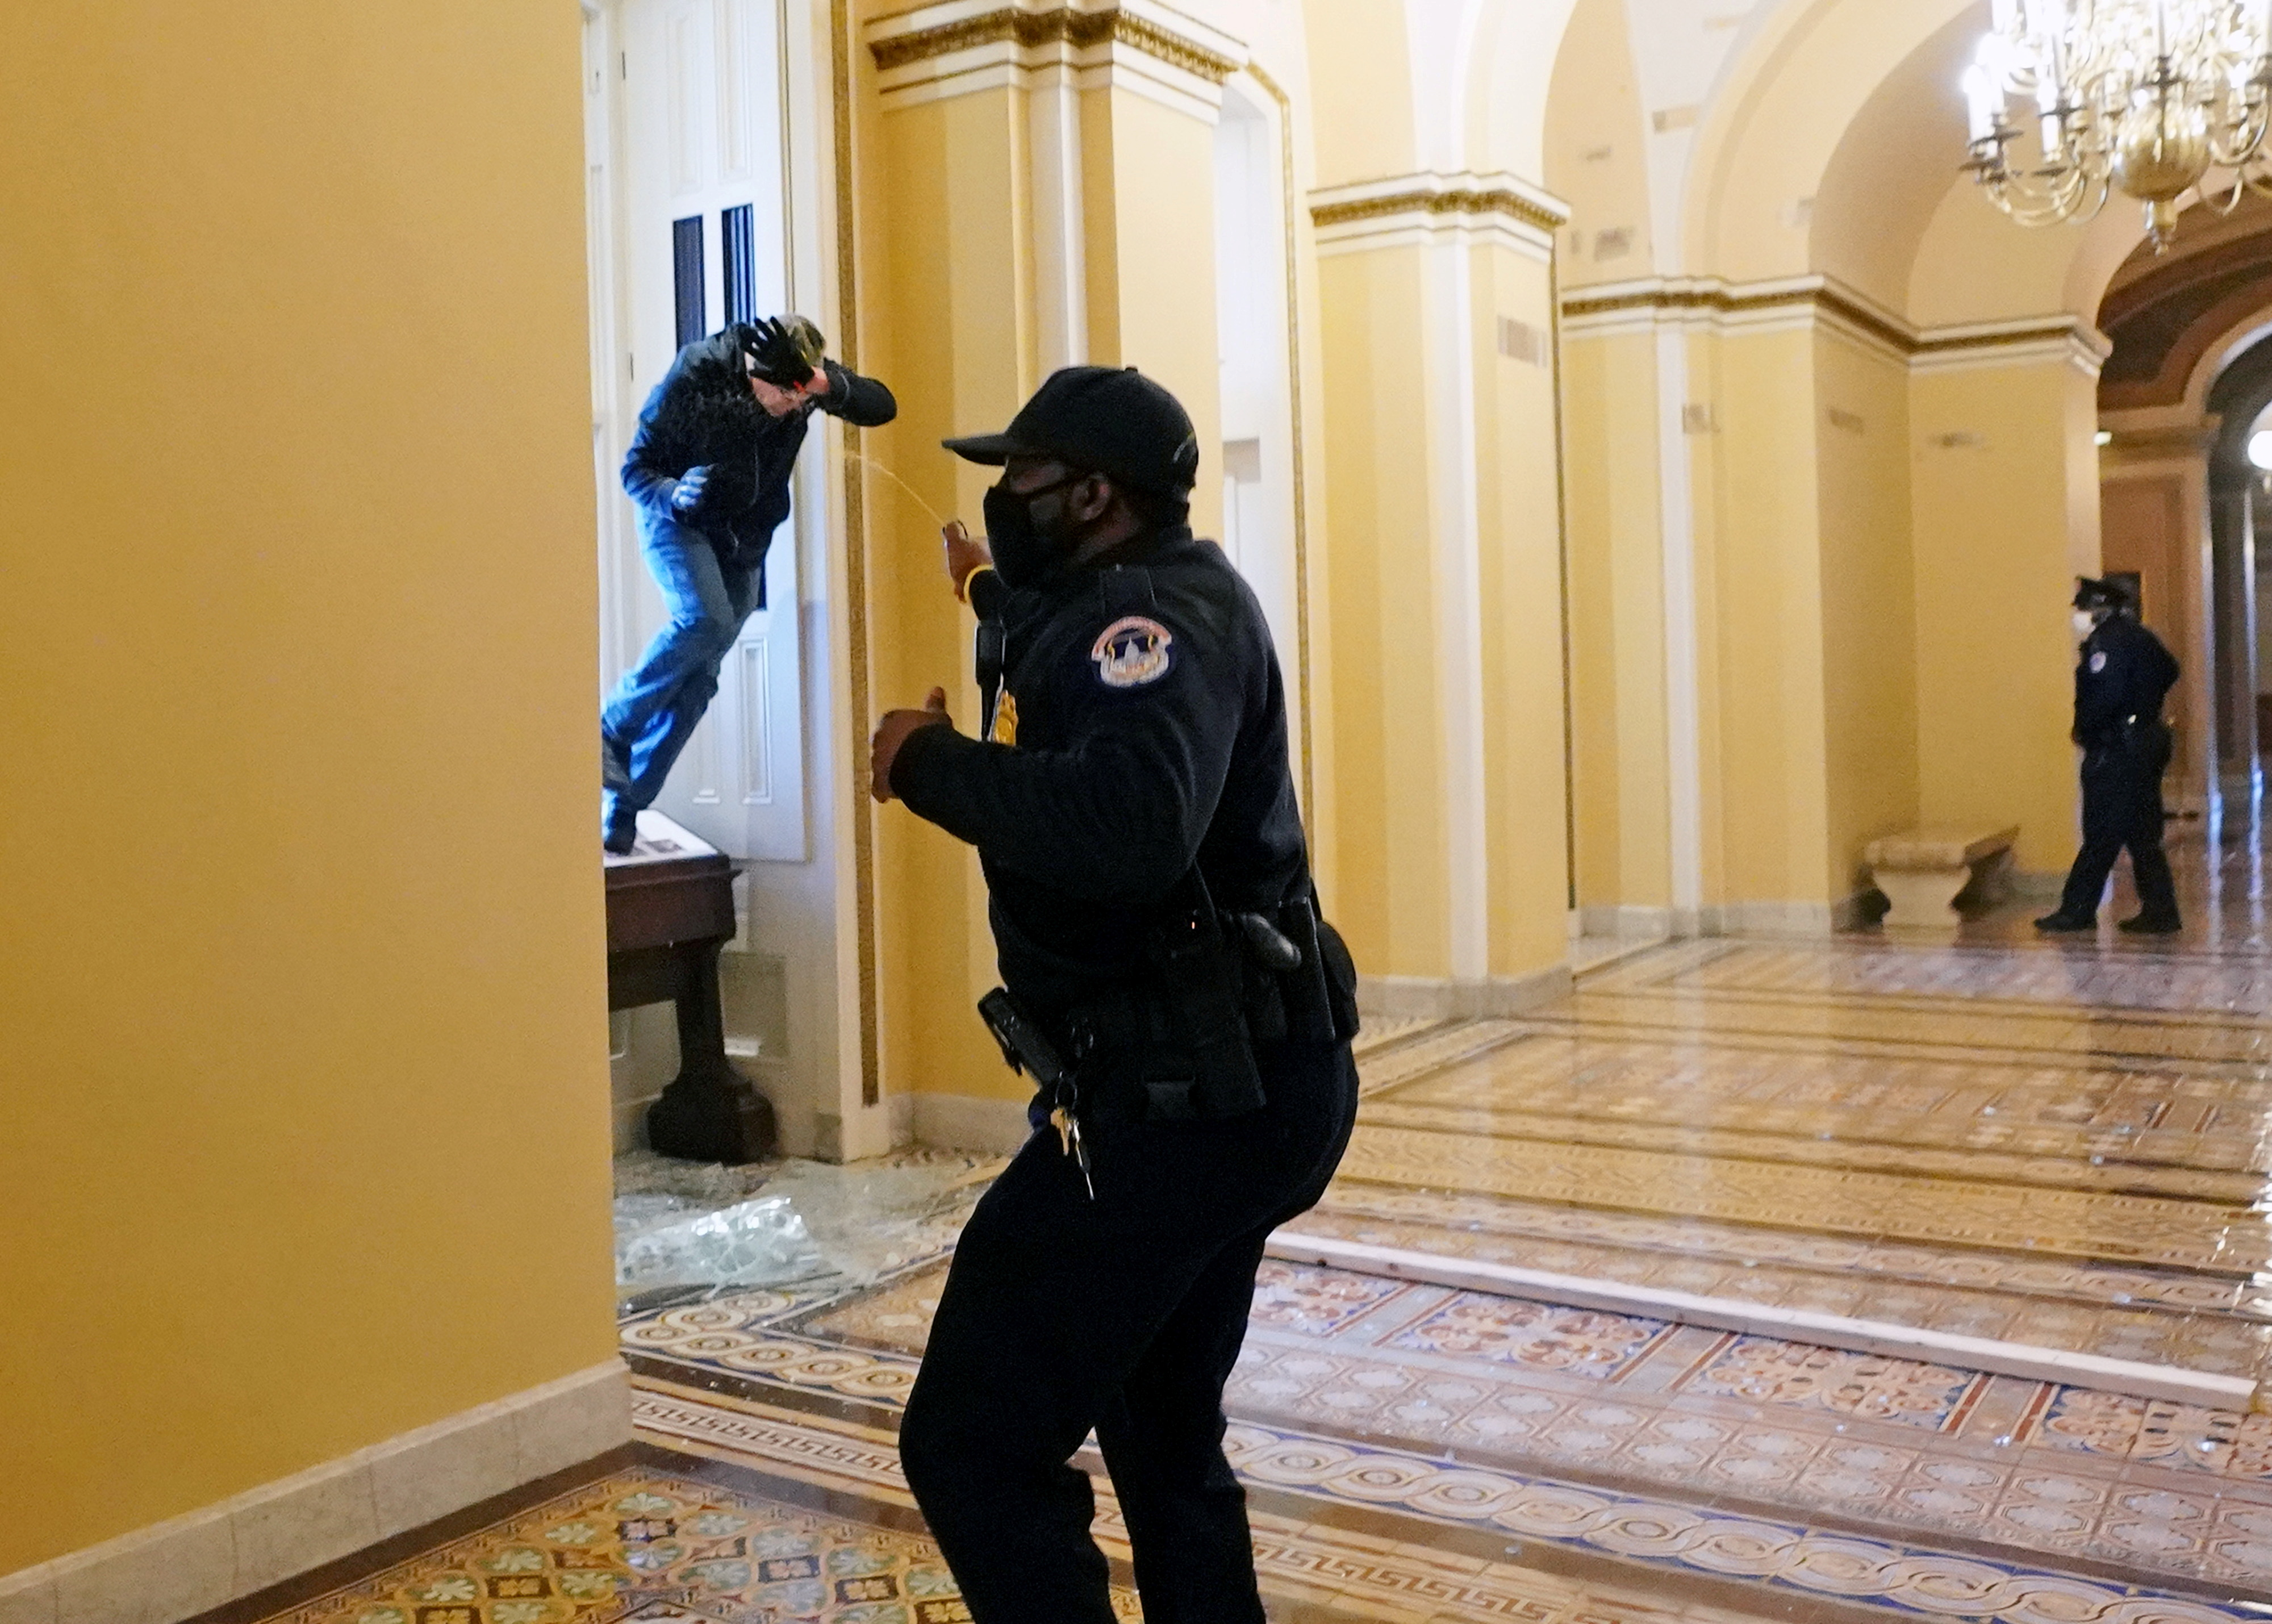 A U.S. Capitol police officer shoots pepper spray at a protestor attempting to enter the Capitol building during a joint session of Congress to certify the 2020 election results on Capitol Hill in Washington, U.S., January 6, 2021.  Kevin Dietsch/Pool via REUTERS